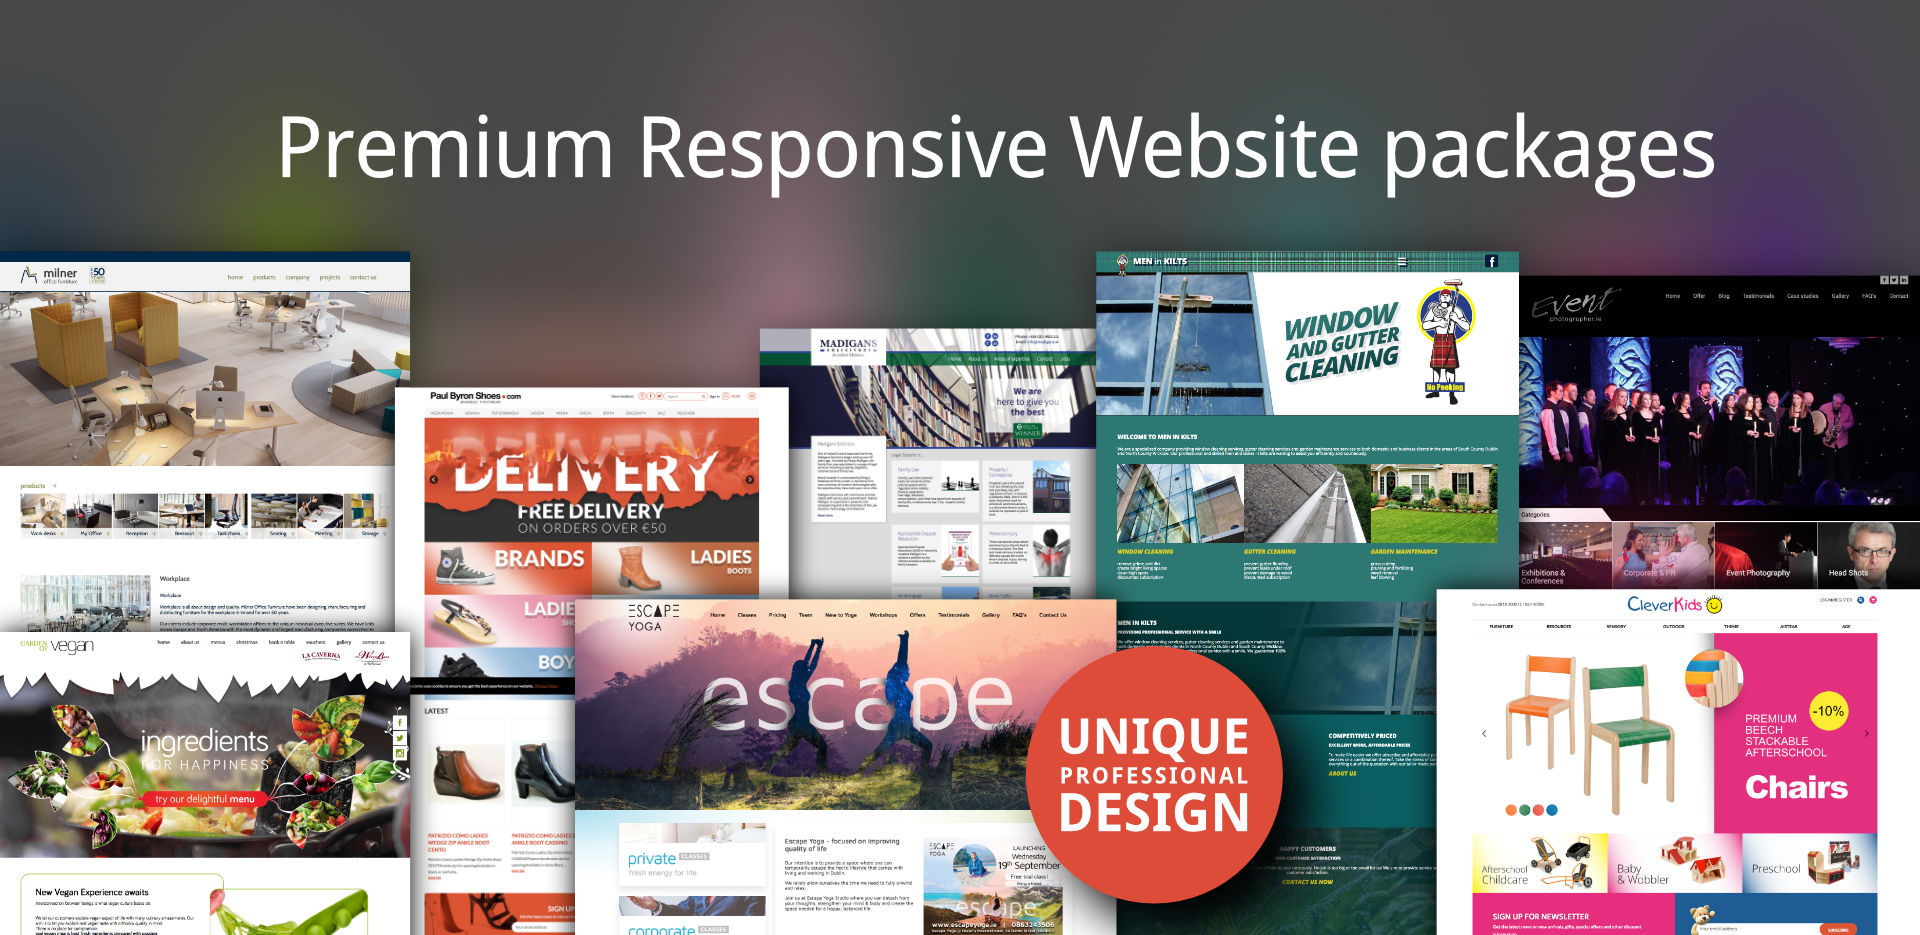 Premium Responsive Website packages